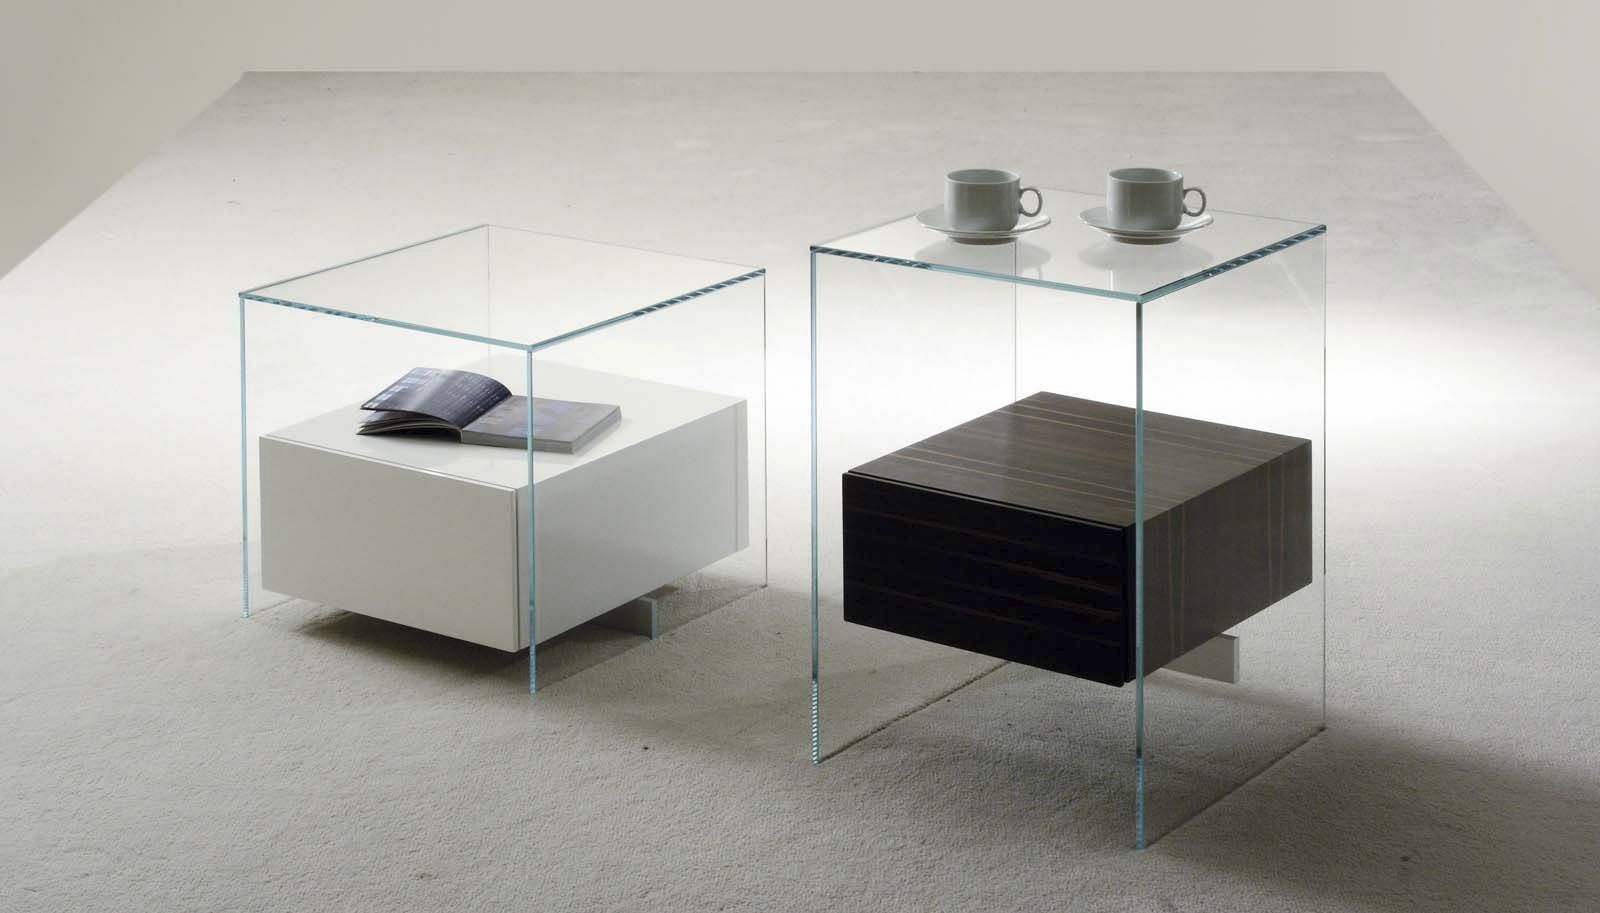 table de chevet design en verre design en image. Black Bedroom Furniture Sets. Home Design Ideas